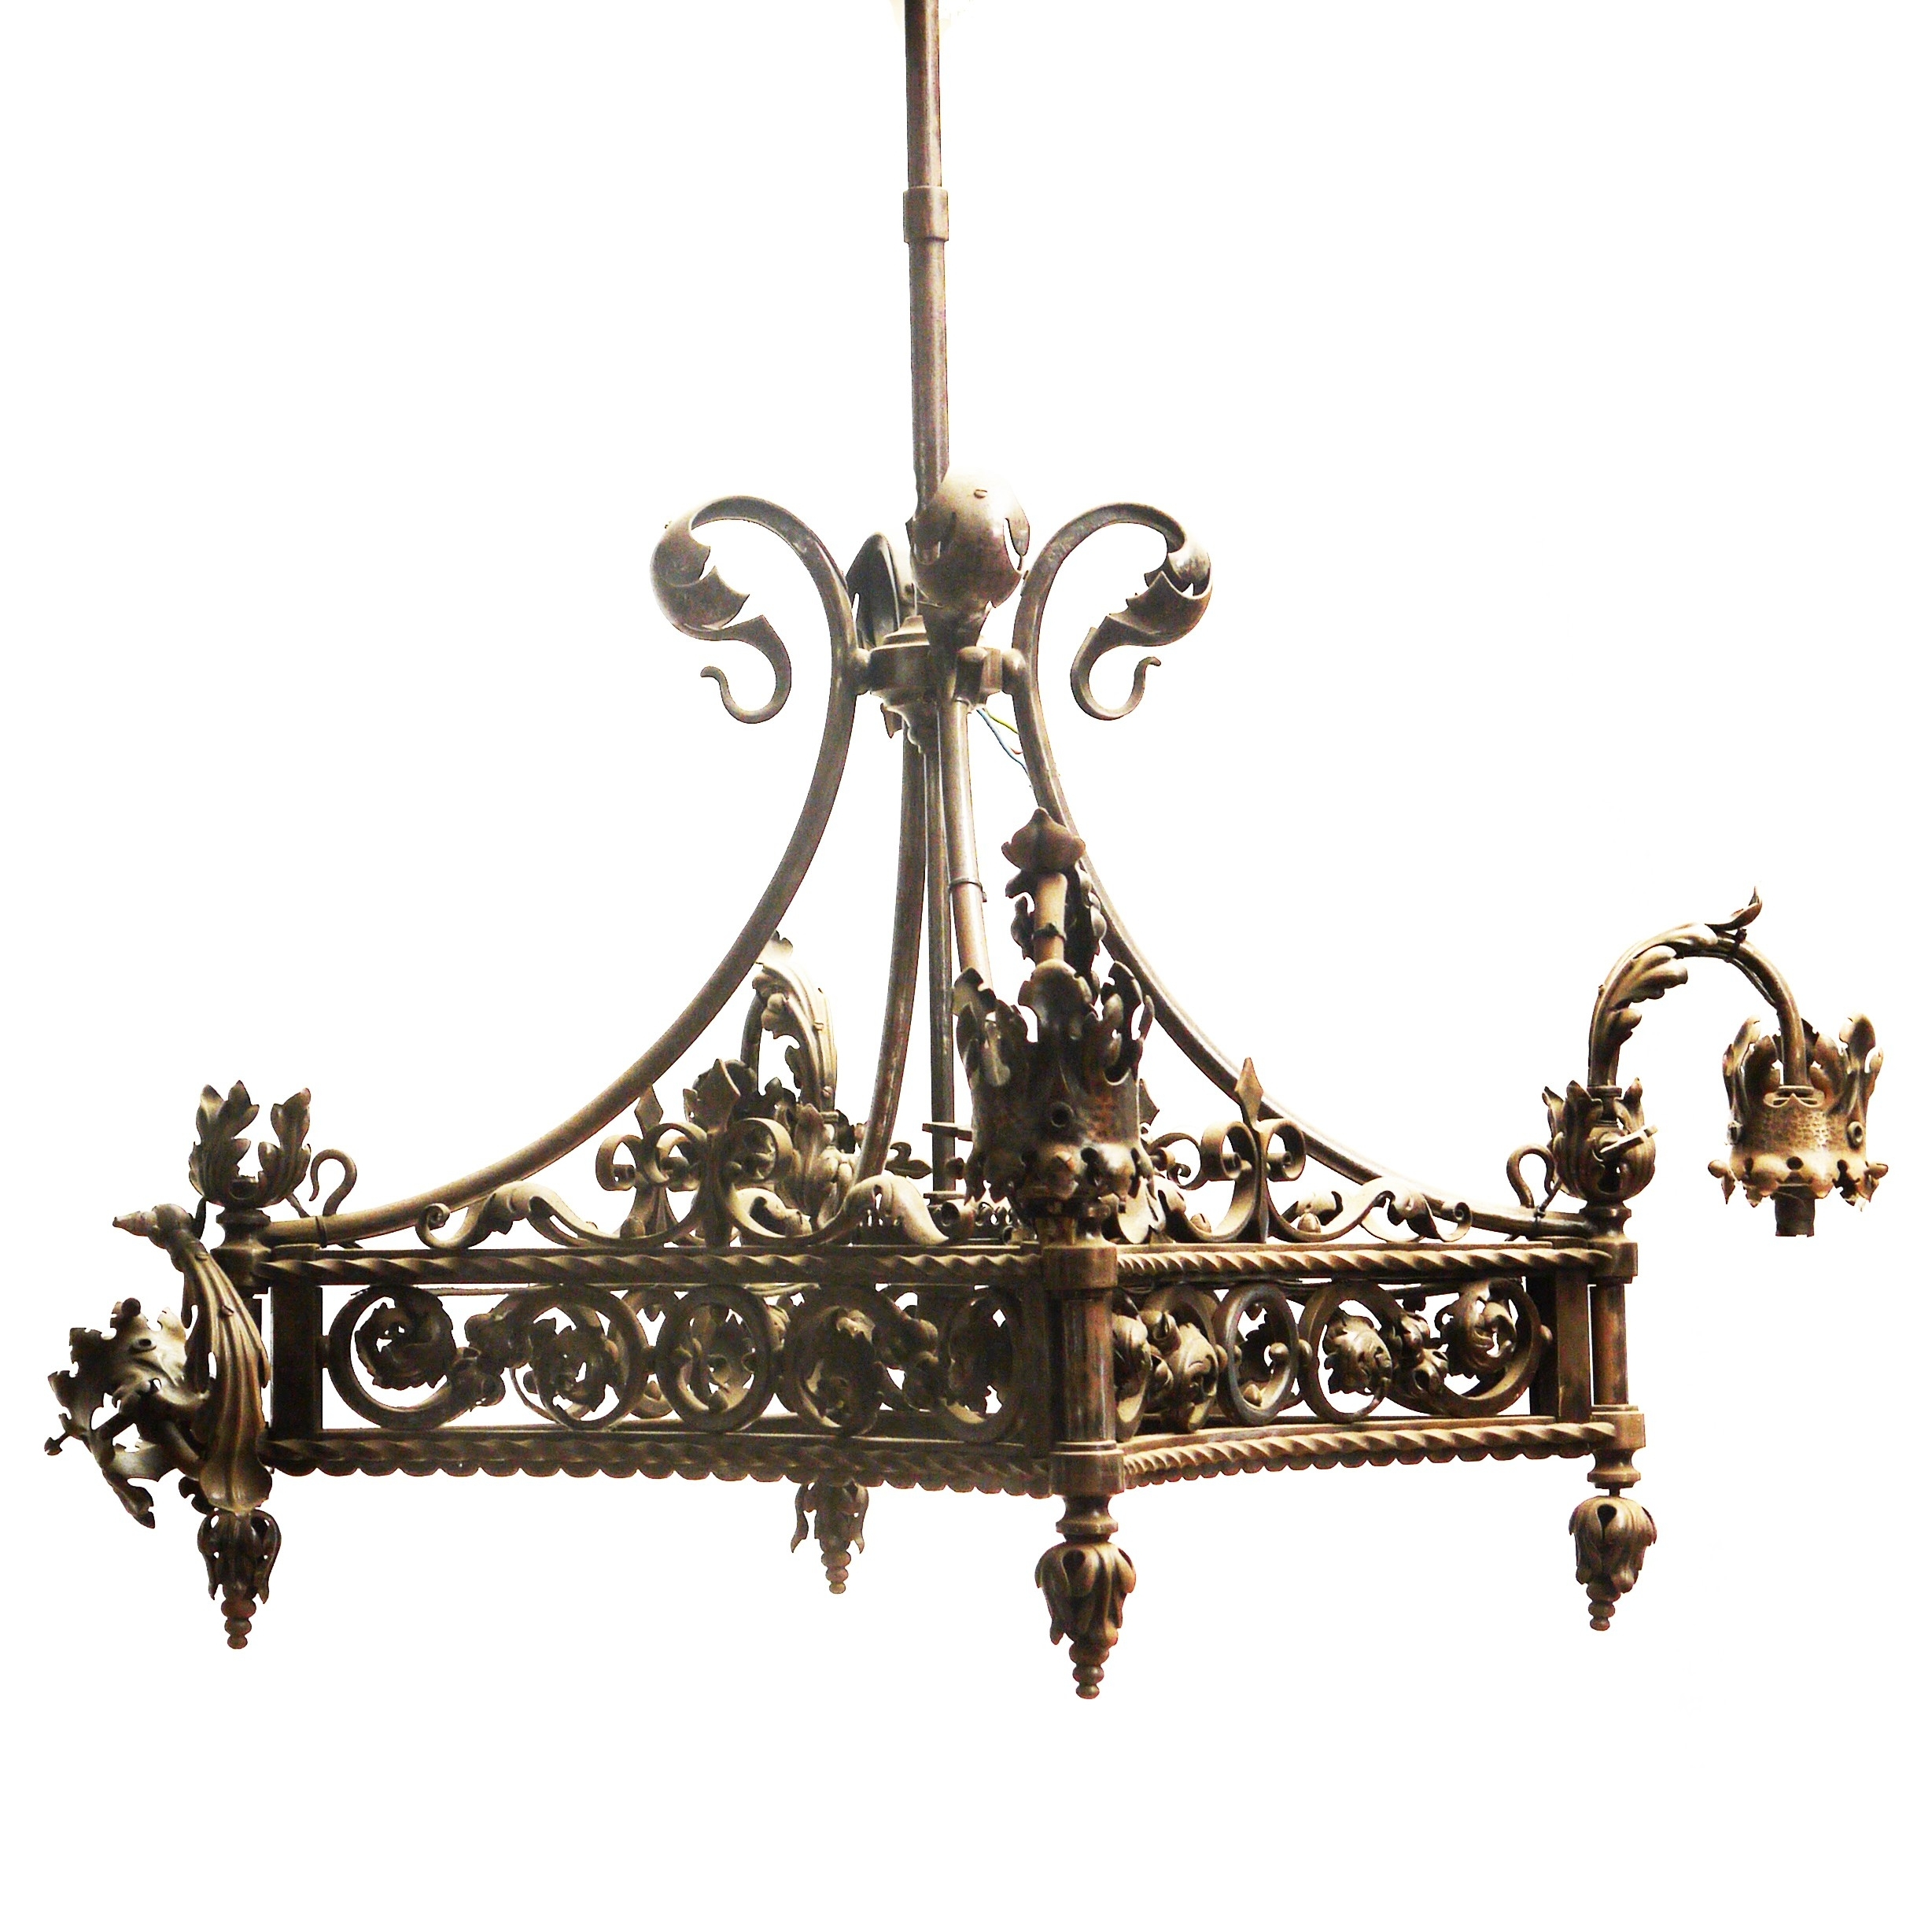 Best And Newest Home Design : Vintage Wrought Iron Chandelier Vintage Floral Wrought Pertaining To Vintage Wrought Iron Chandelier (View 3 of 20)